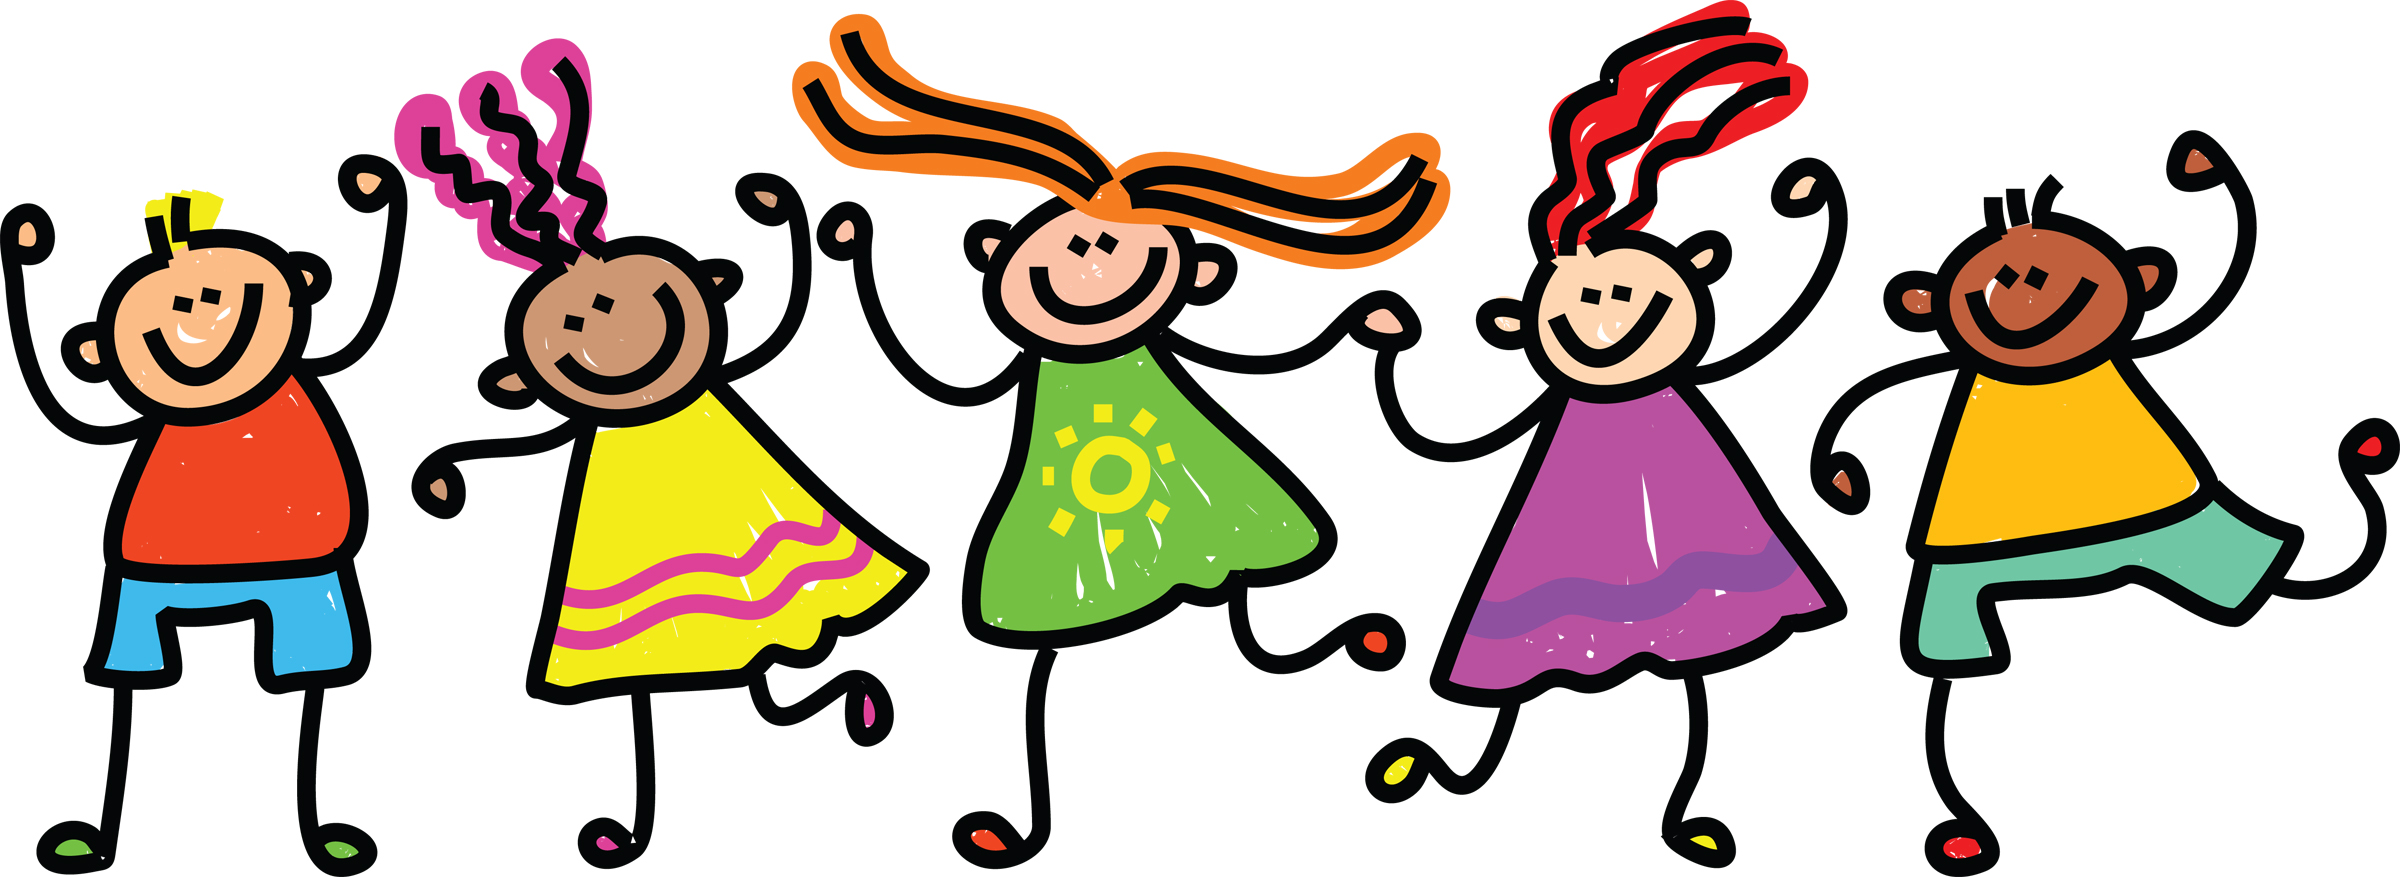 Child Clip Art-Child Clip Art-1